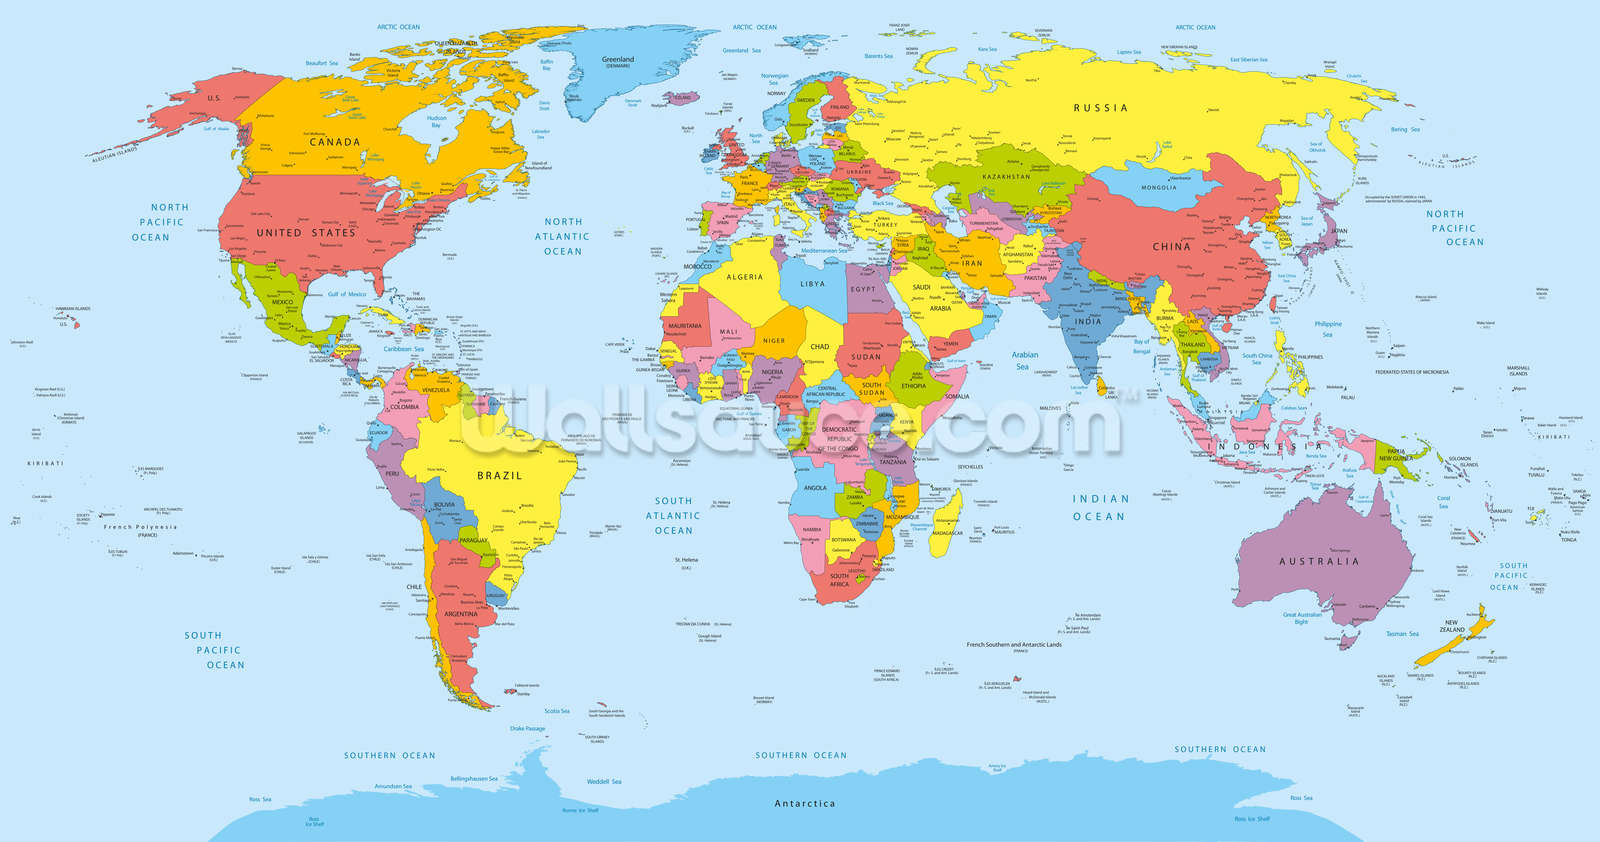 Colourful world map wallpaper wall mural wallsauce usa colourful world map wallpaper mural gumiabroncs Images